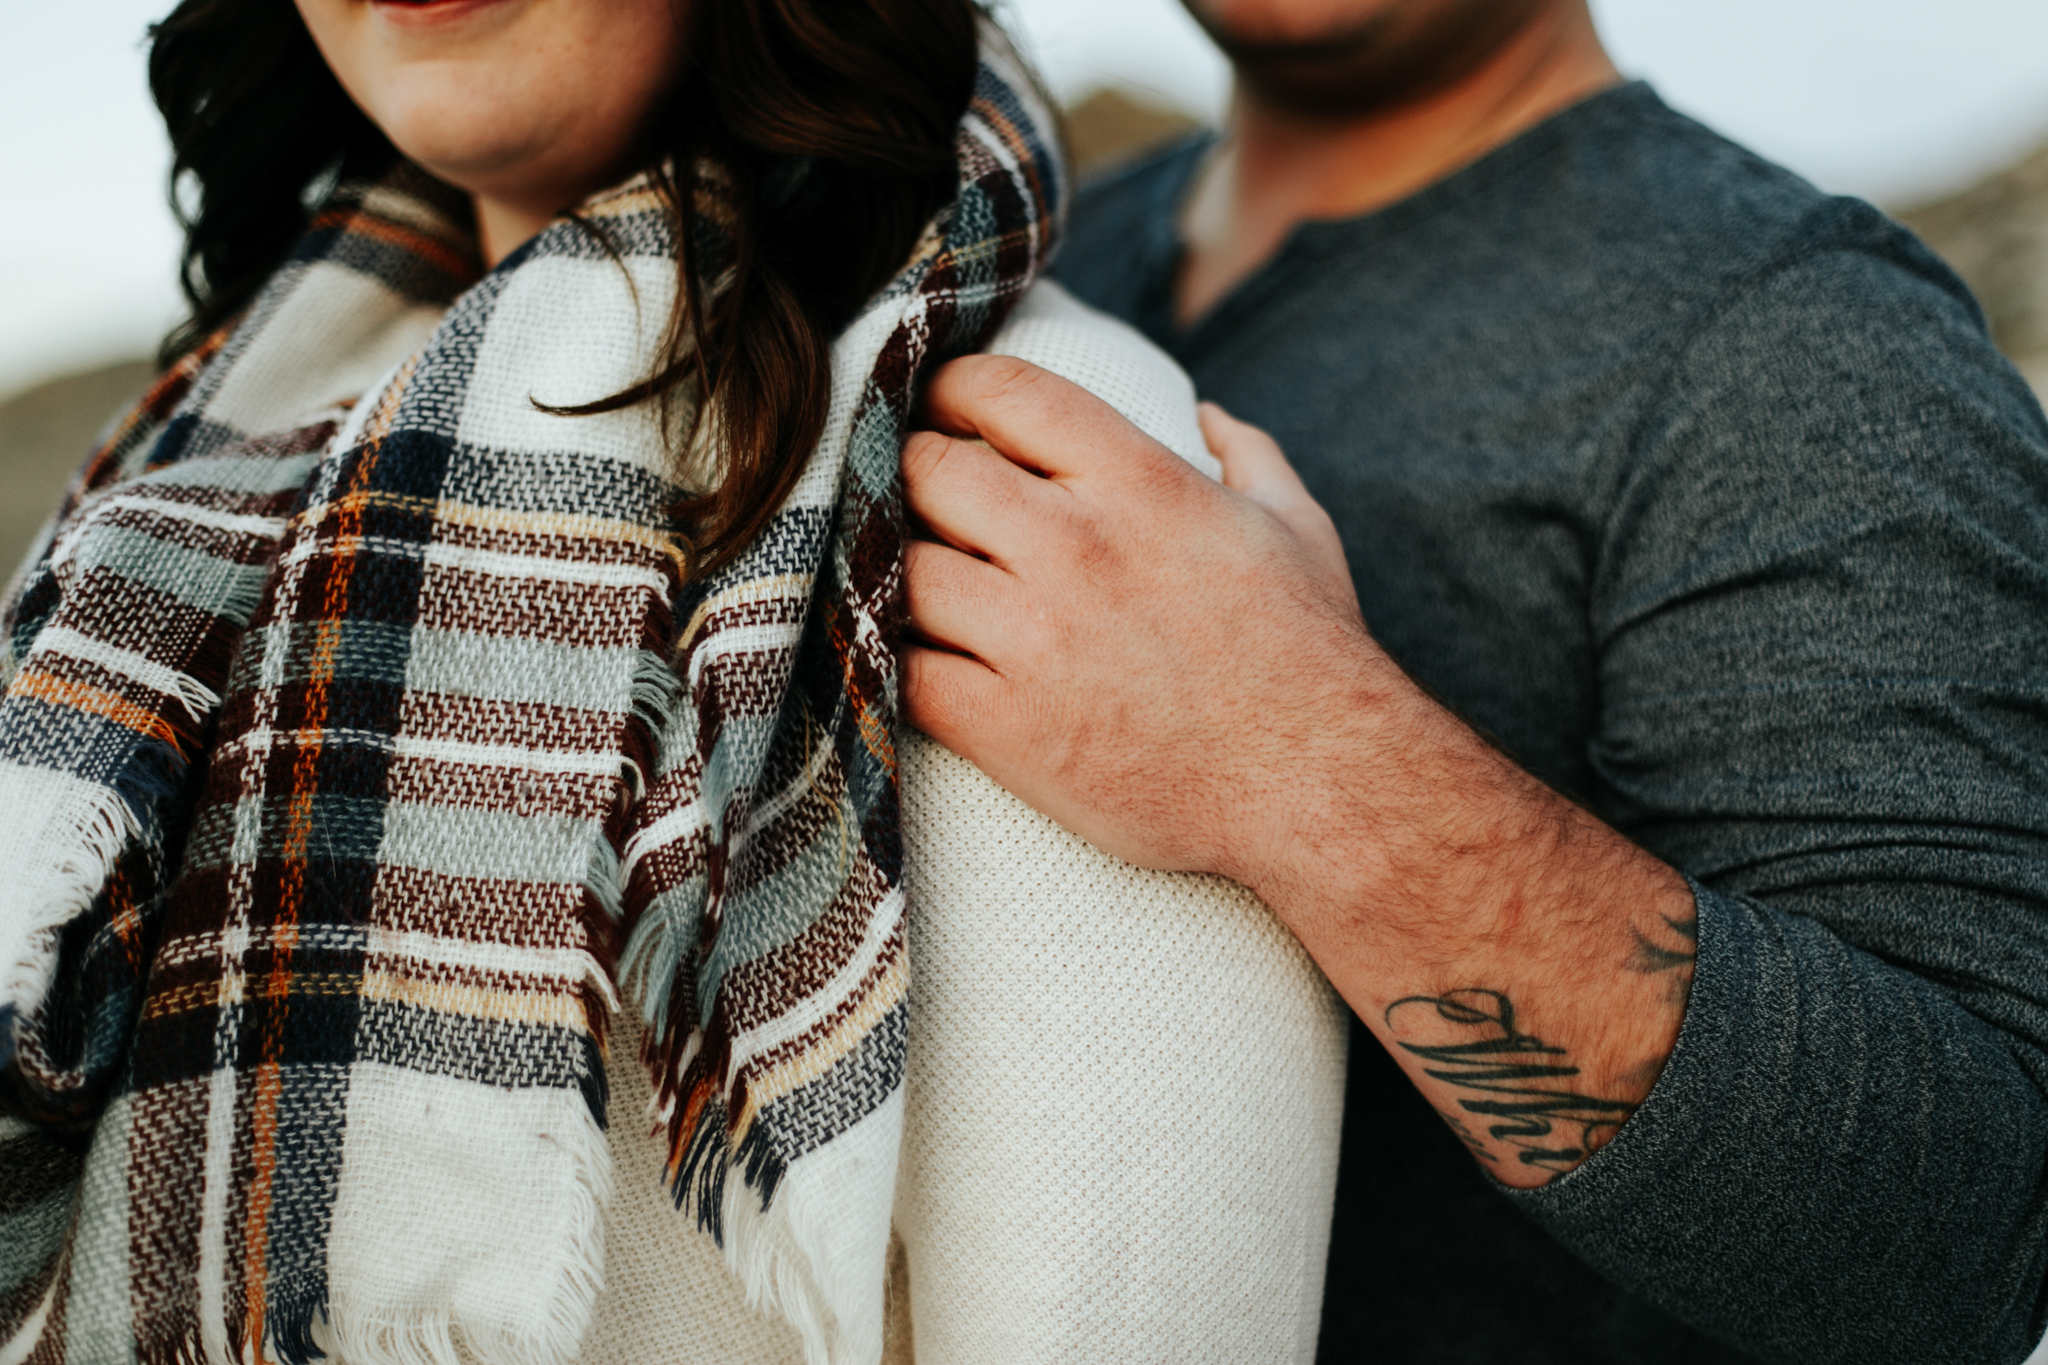 lethbridge-photographer-love-and-be-loved-photography-christy-bryan-fall-autumn-engagement-photo-image-picture-49.jpg